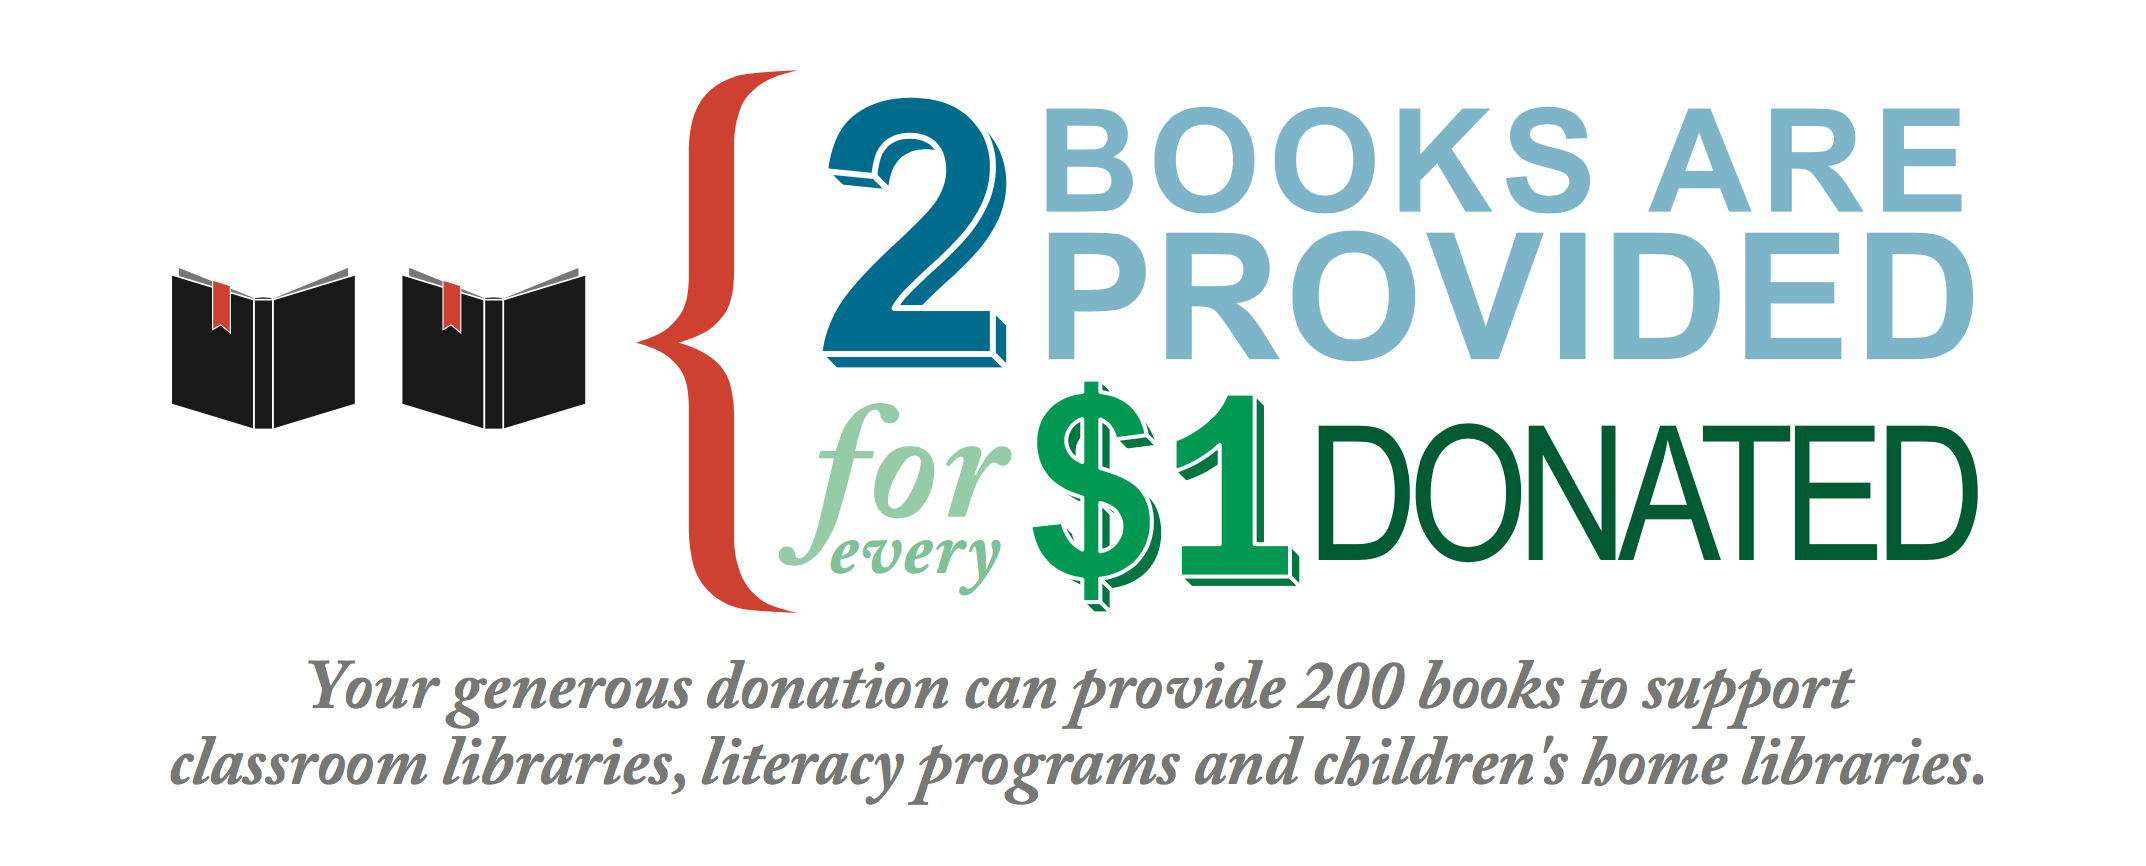 Image describing 2 books donated for every dollar donated